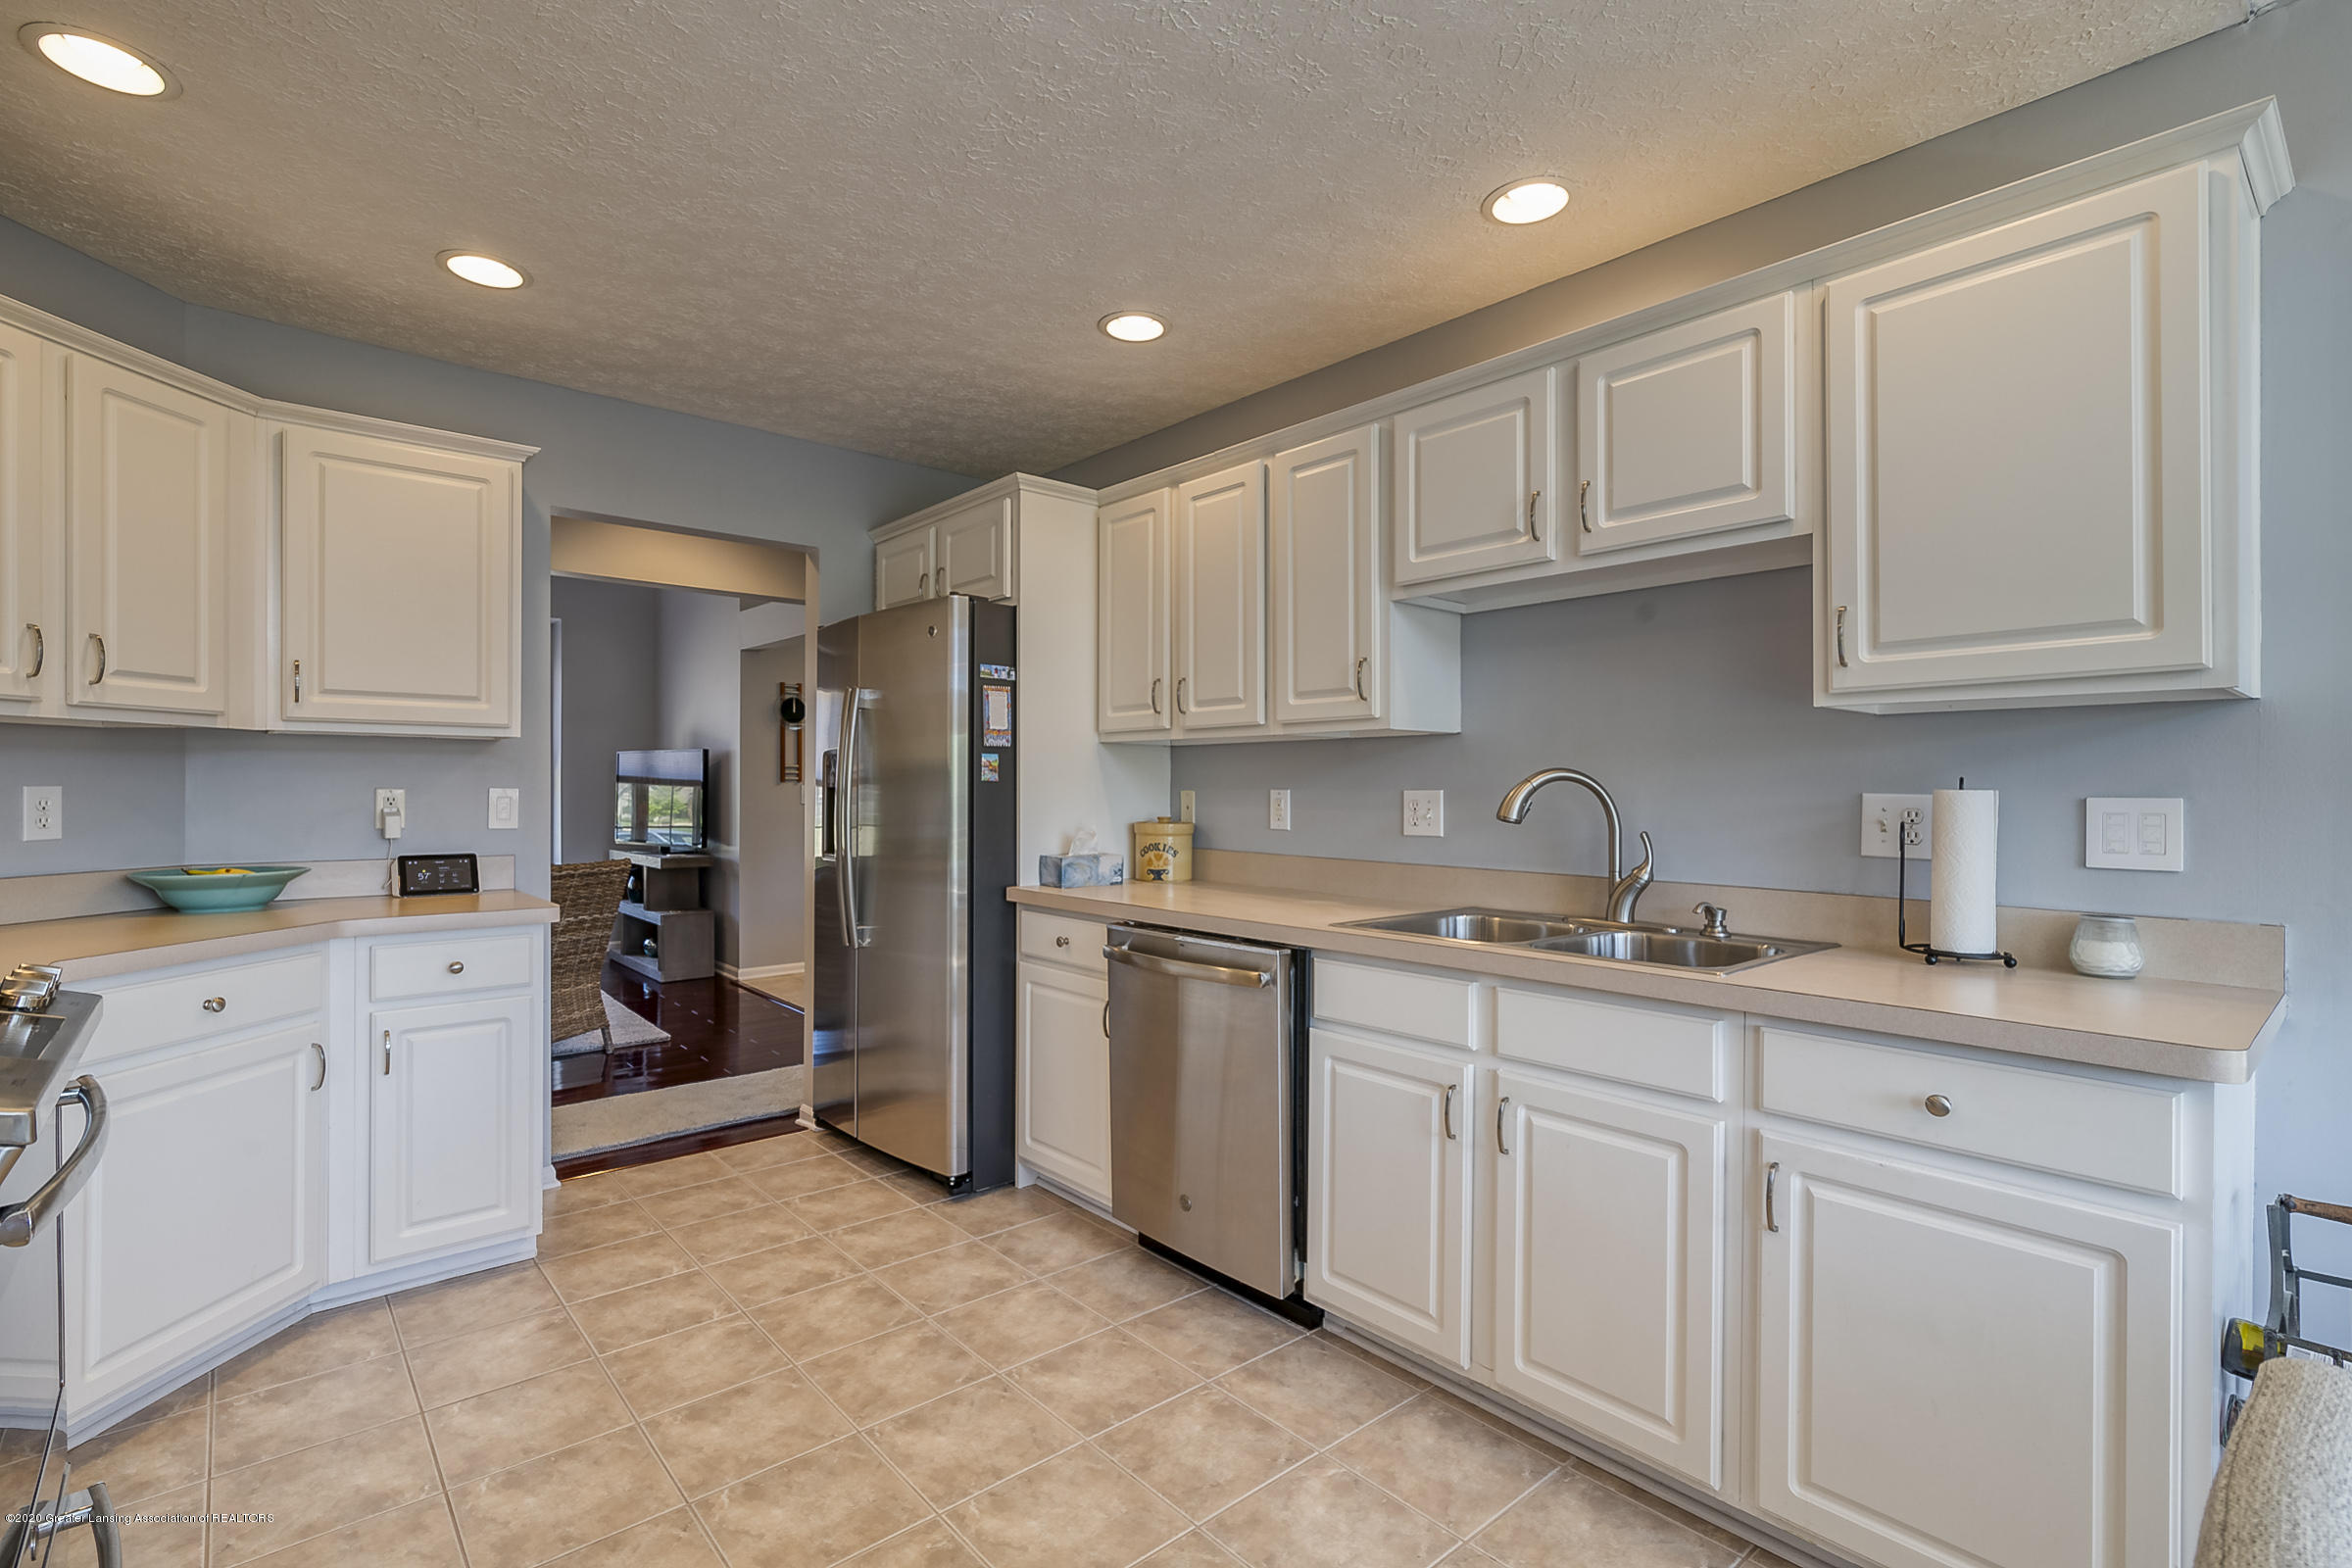 4092 Pheasant Run - KITCHEN - 14